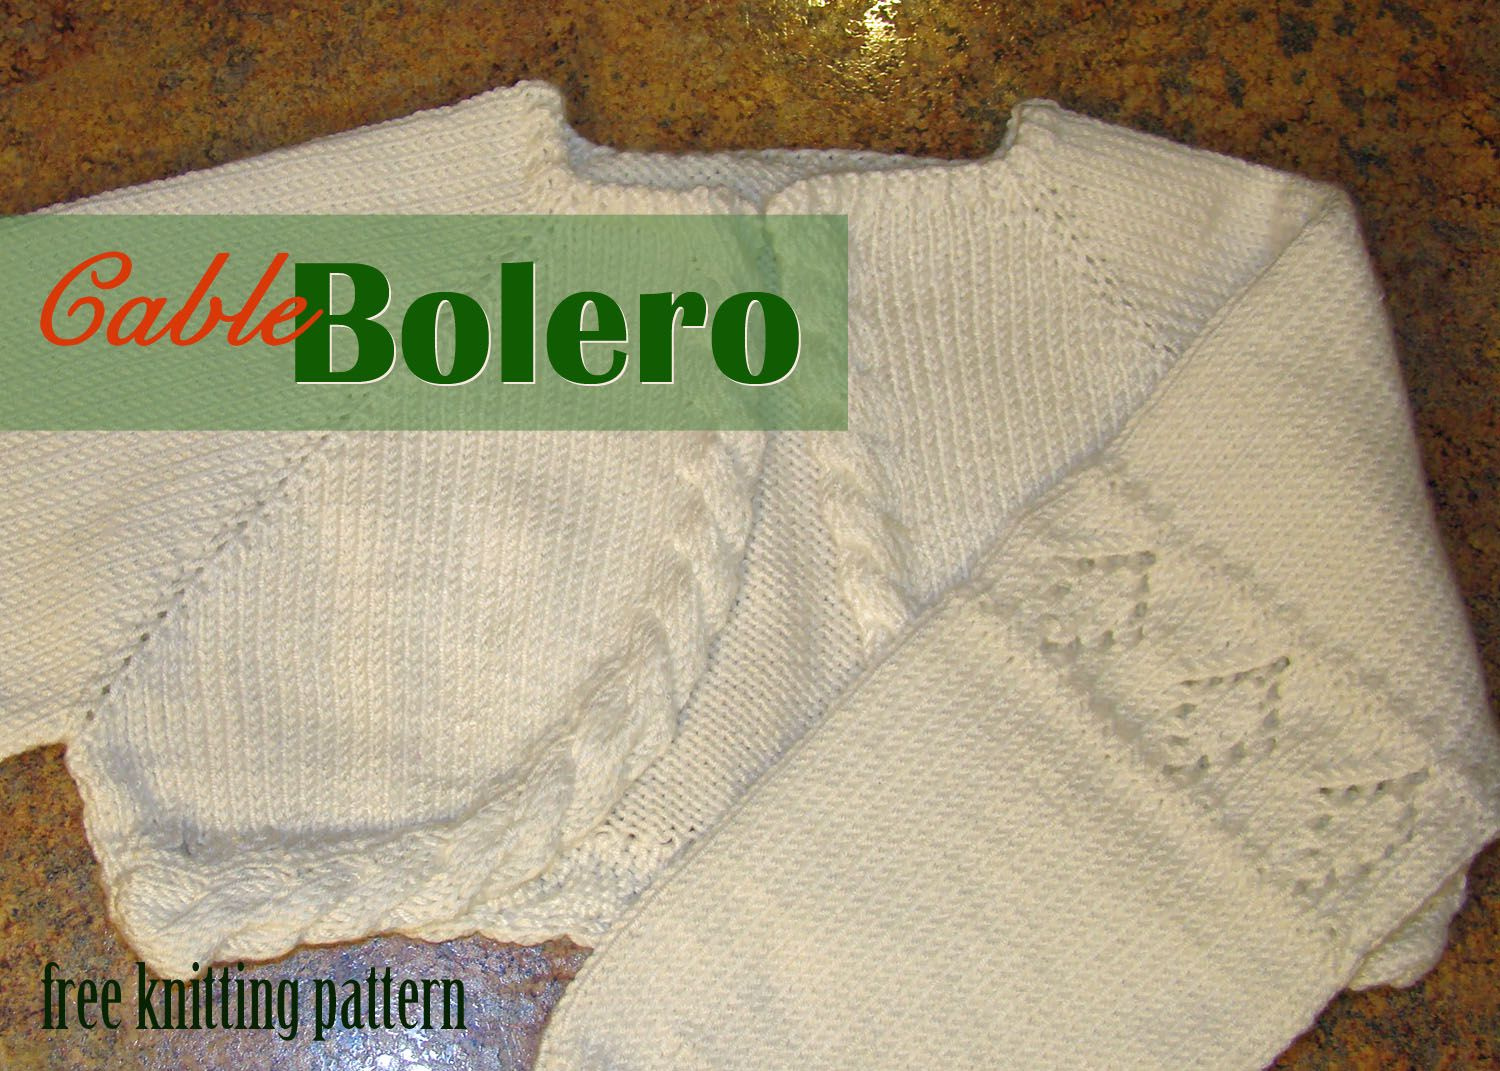 Free knitting pattern cable bolero knitting pinterest free knitting pattern cable bolero bankloansurffo Image collections